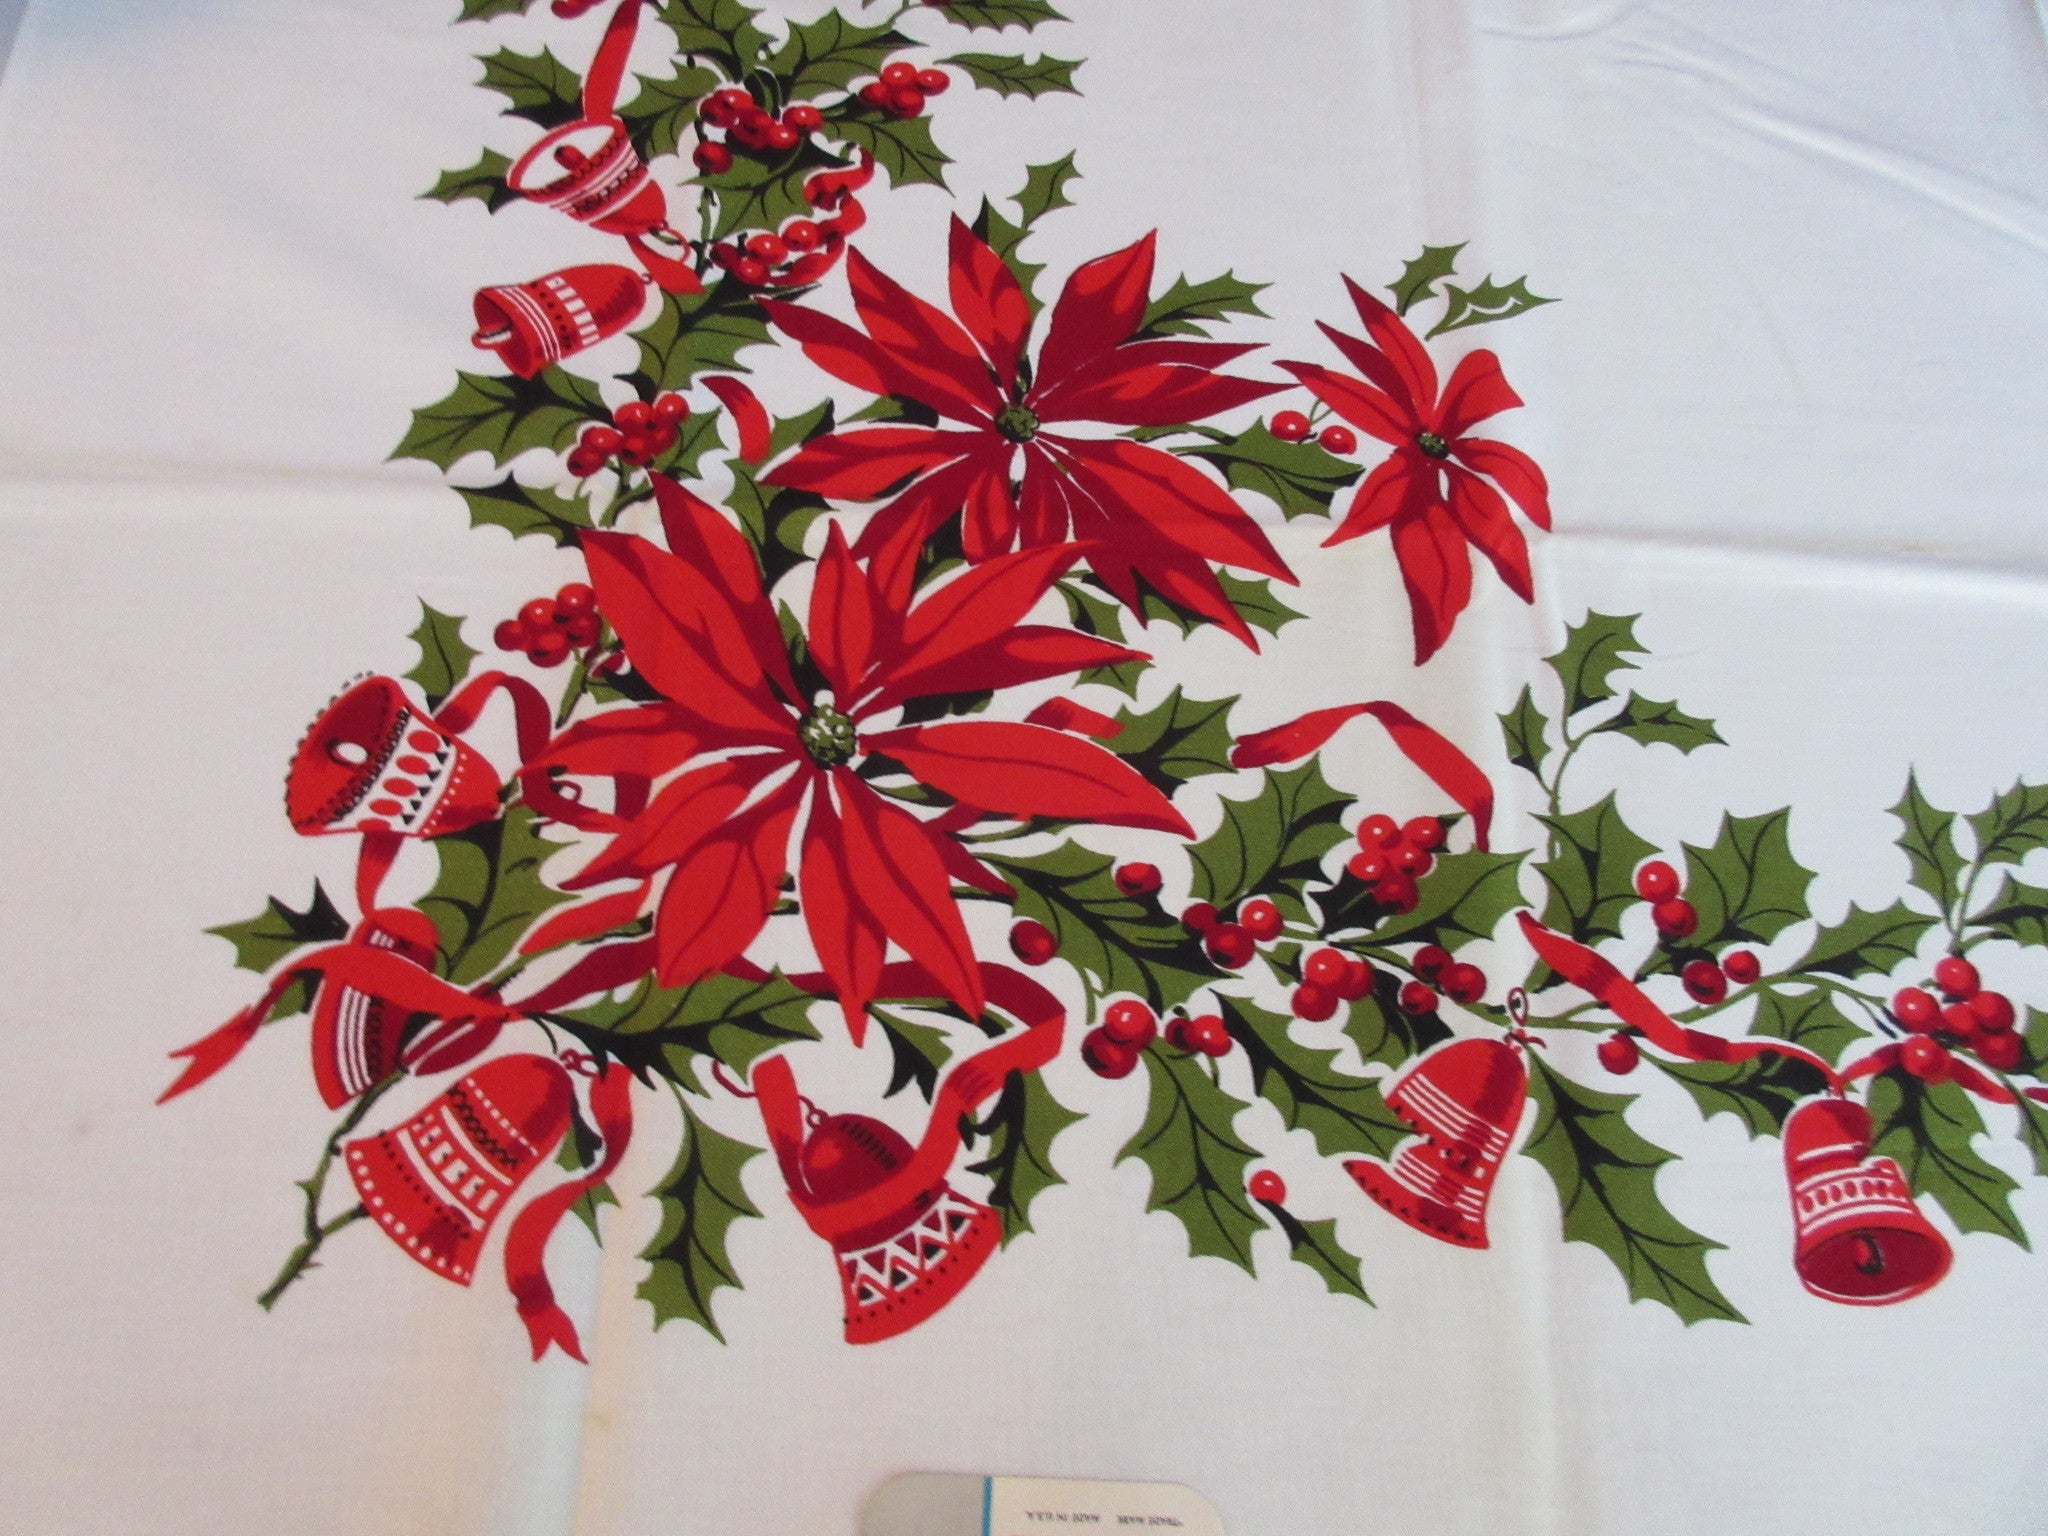 Wilendure Poinsettias Christmas MWT Vintage Printed Tablecloth (53 X 52)